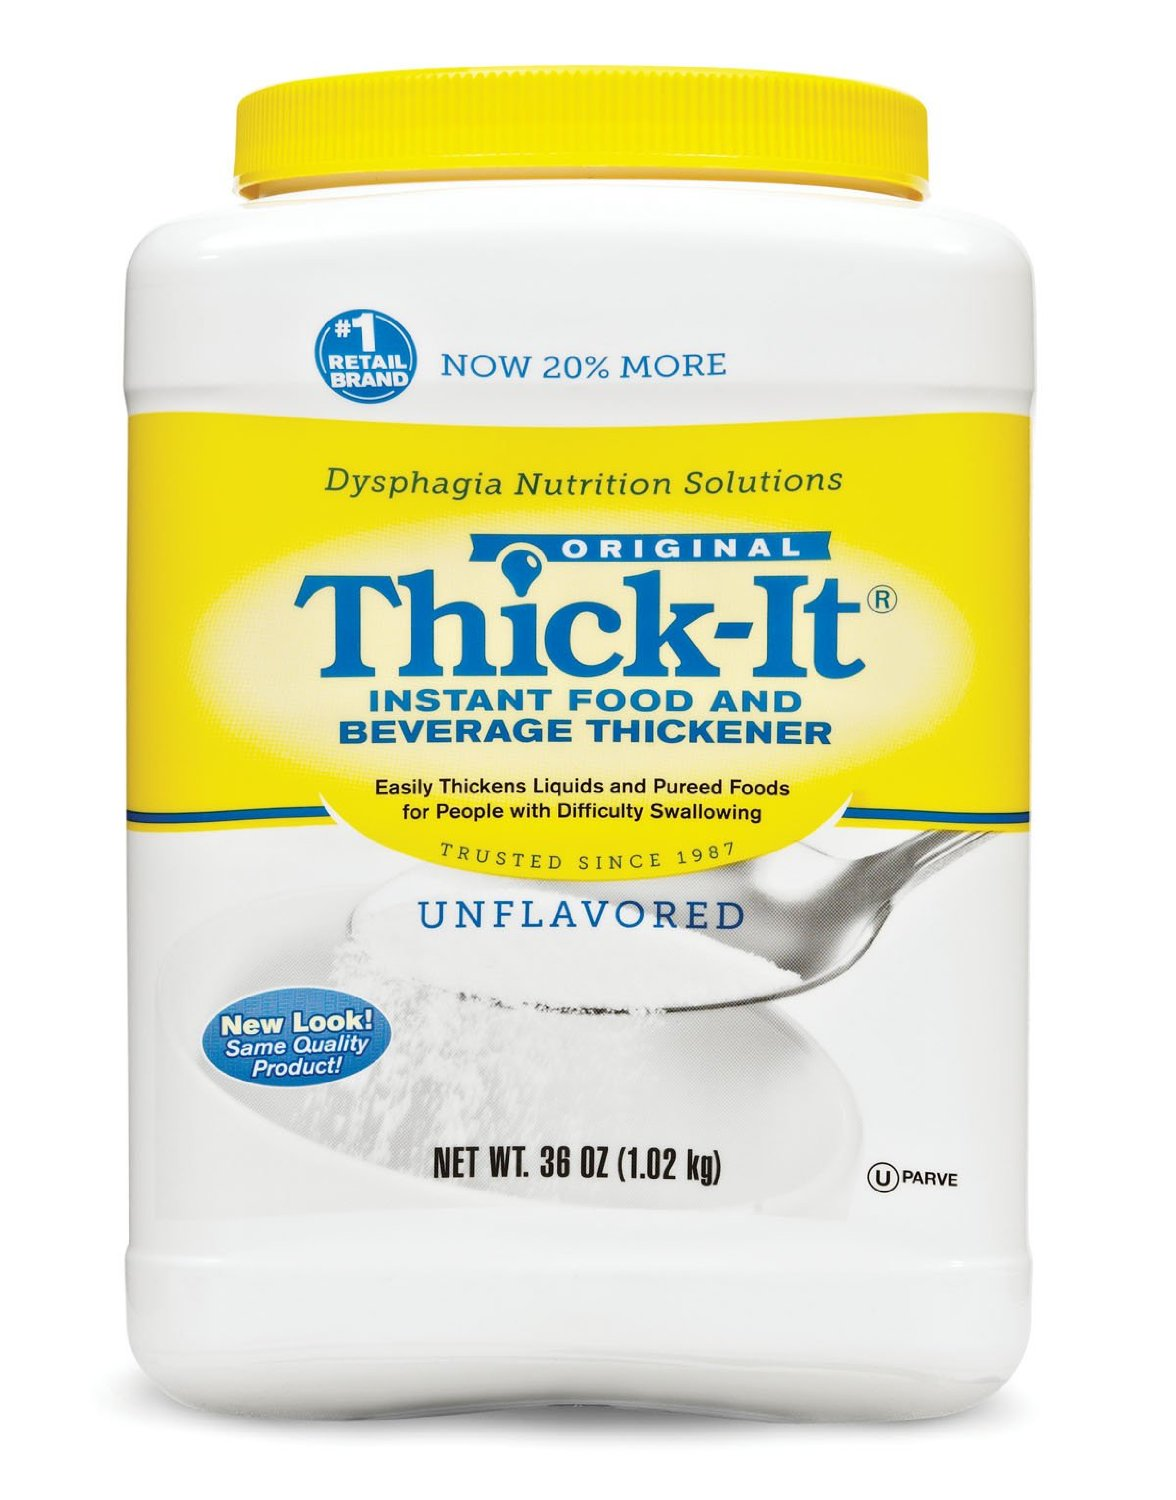 Thick-It Instant Food and Beverage Thickener, 36 oz